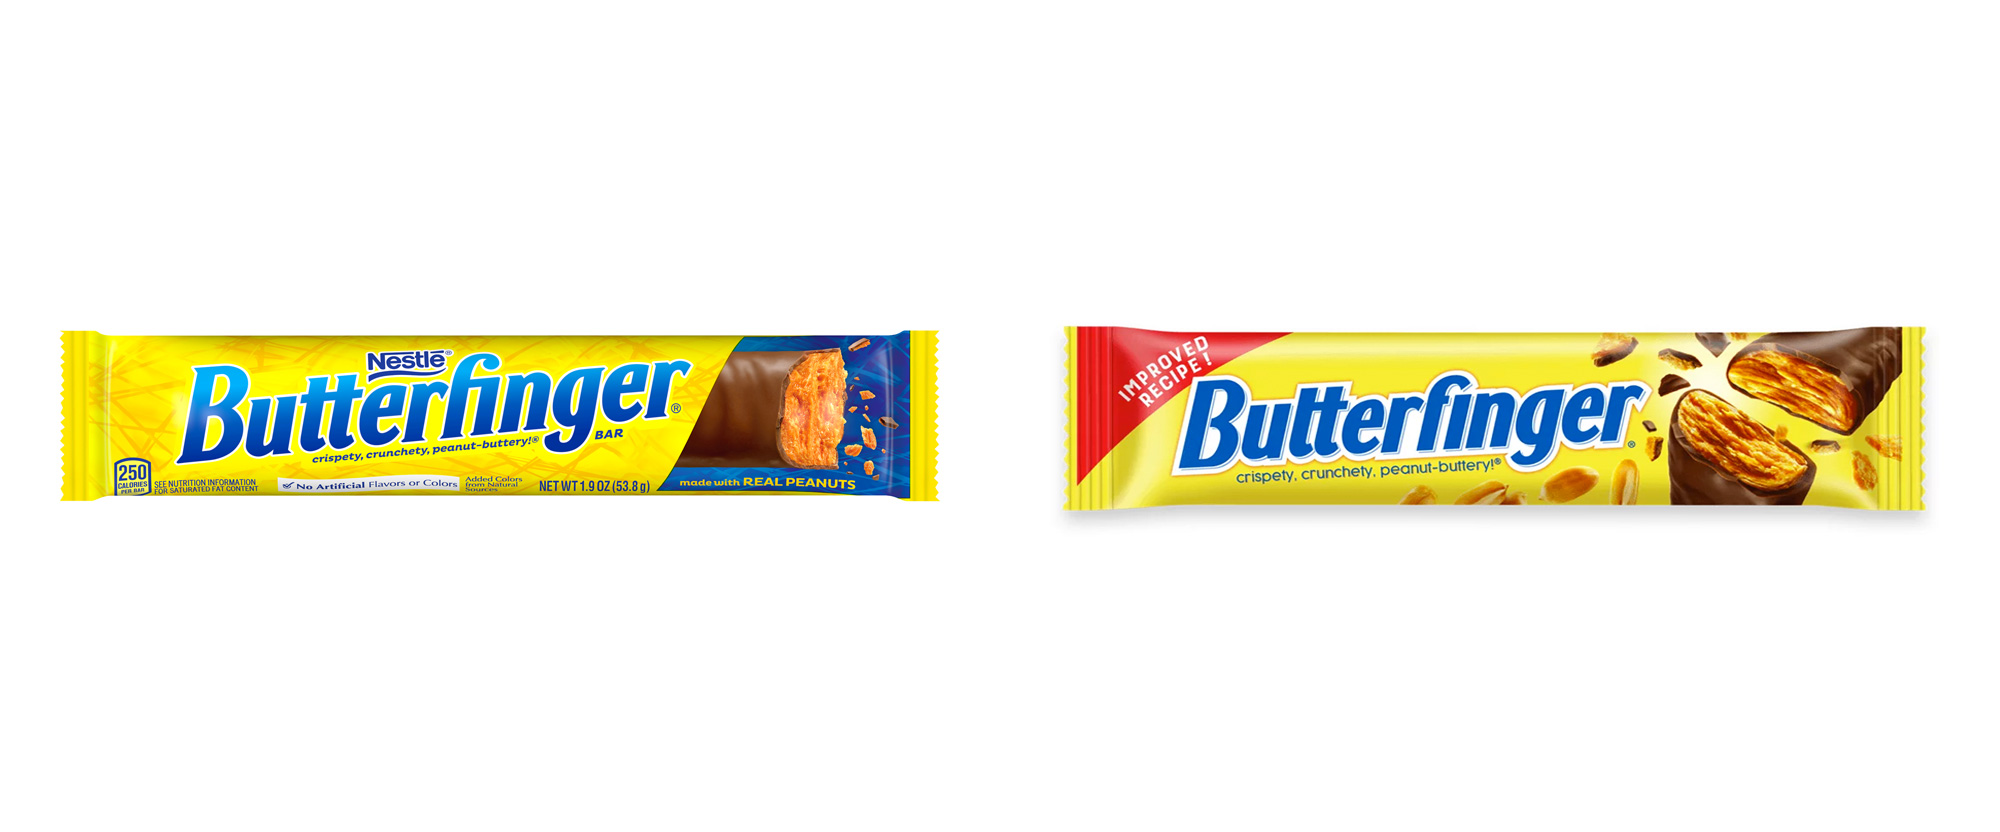 New Logo and Packaging for Butterfinger